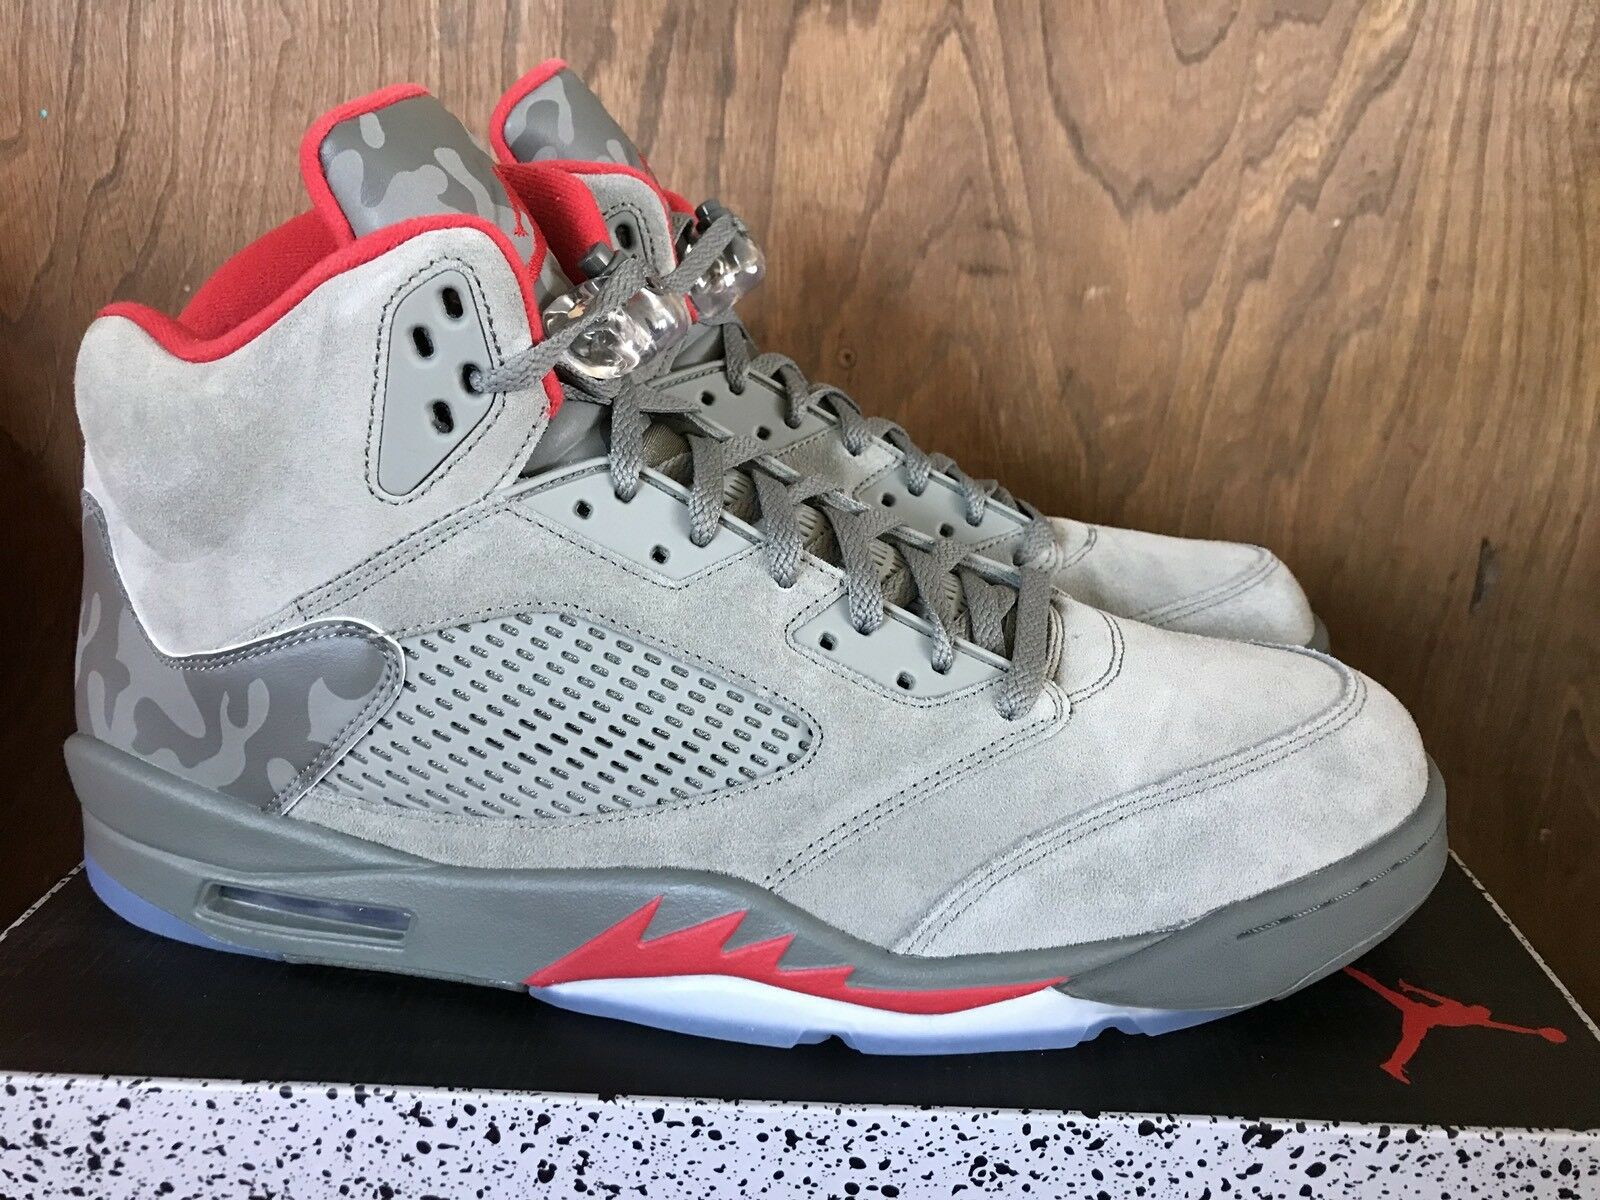 d8fe31edc976 Nike Air Jordan 5 Retro 136027 136027 136027 051 Grey Red Camo Size 18 NIB  FREE